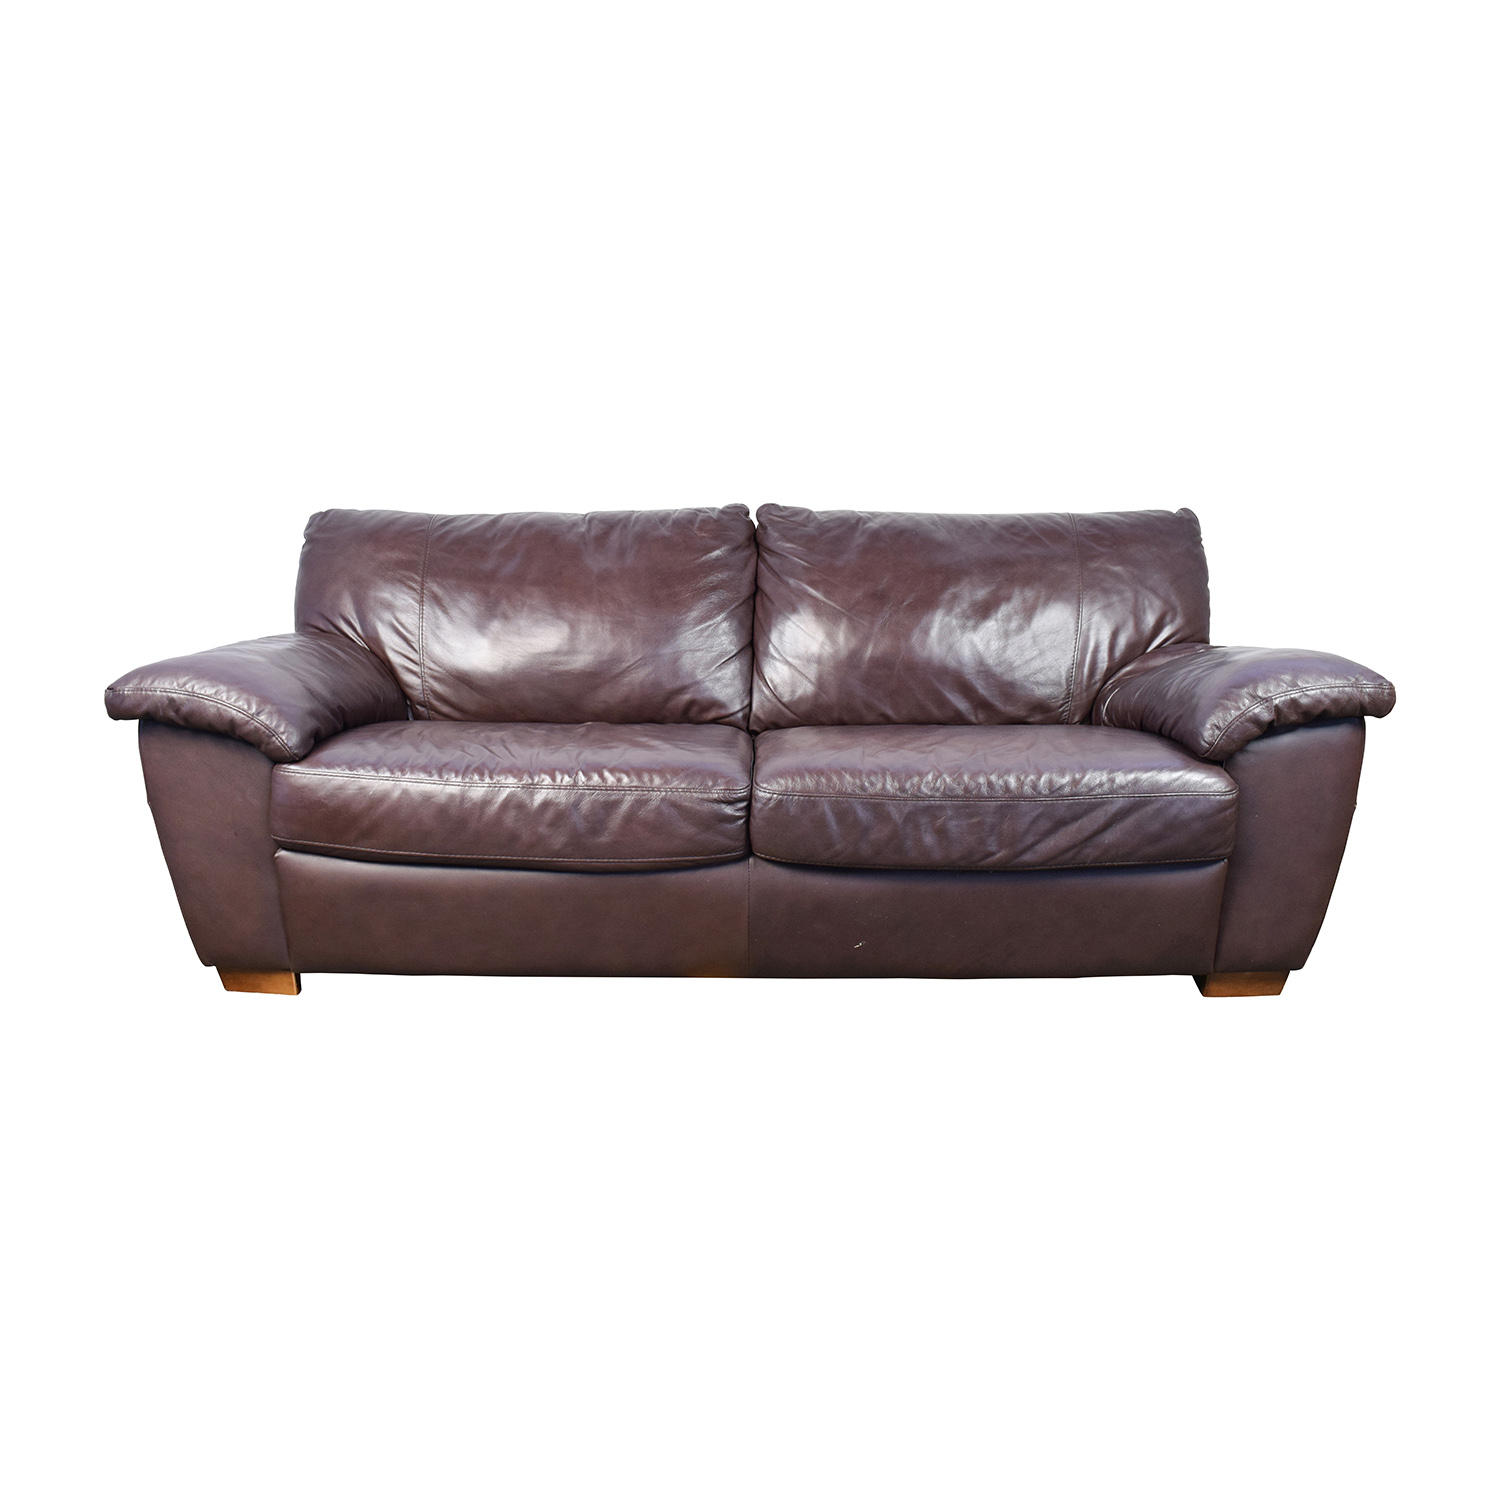 Second Hand Classic Sofas On Sale